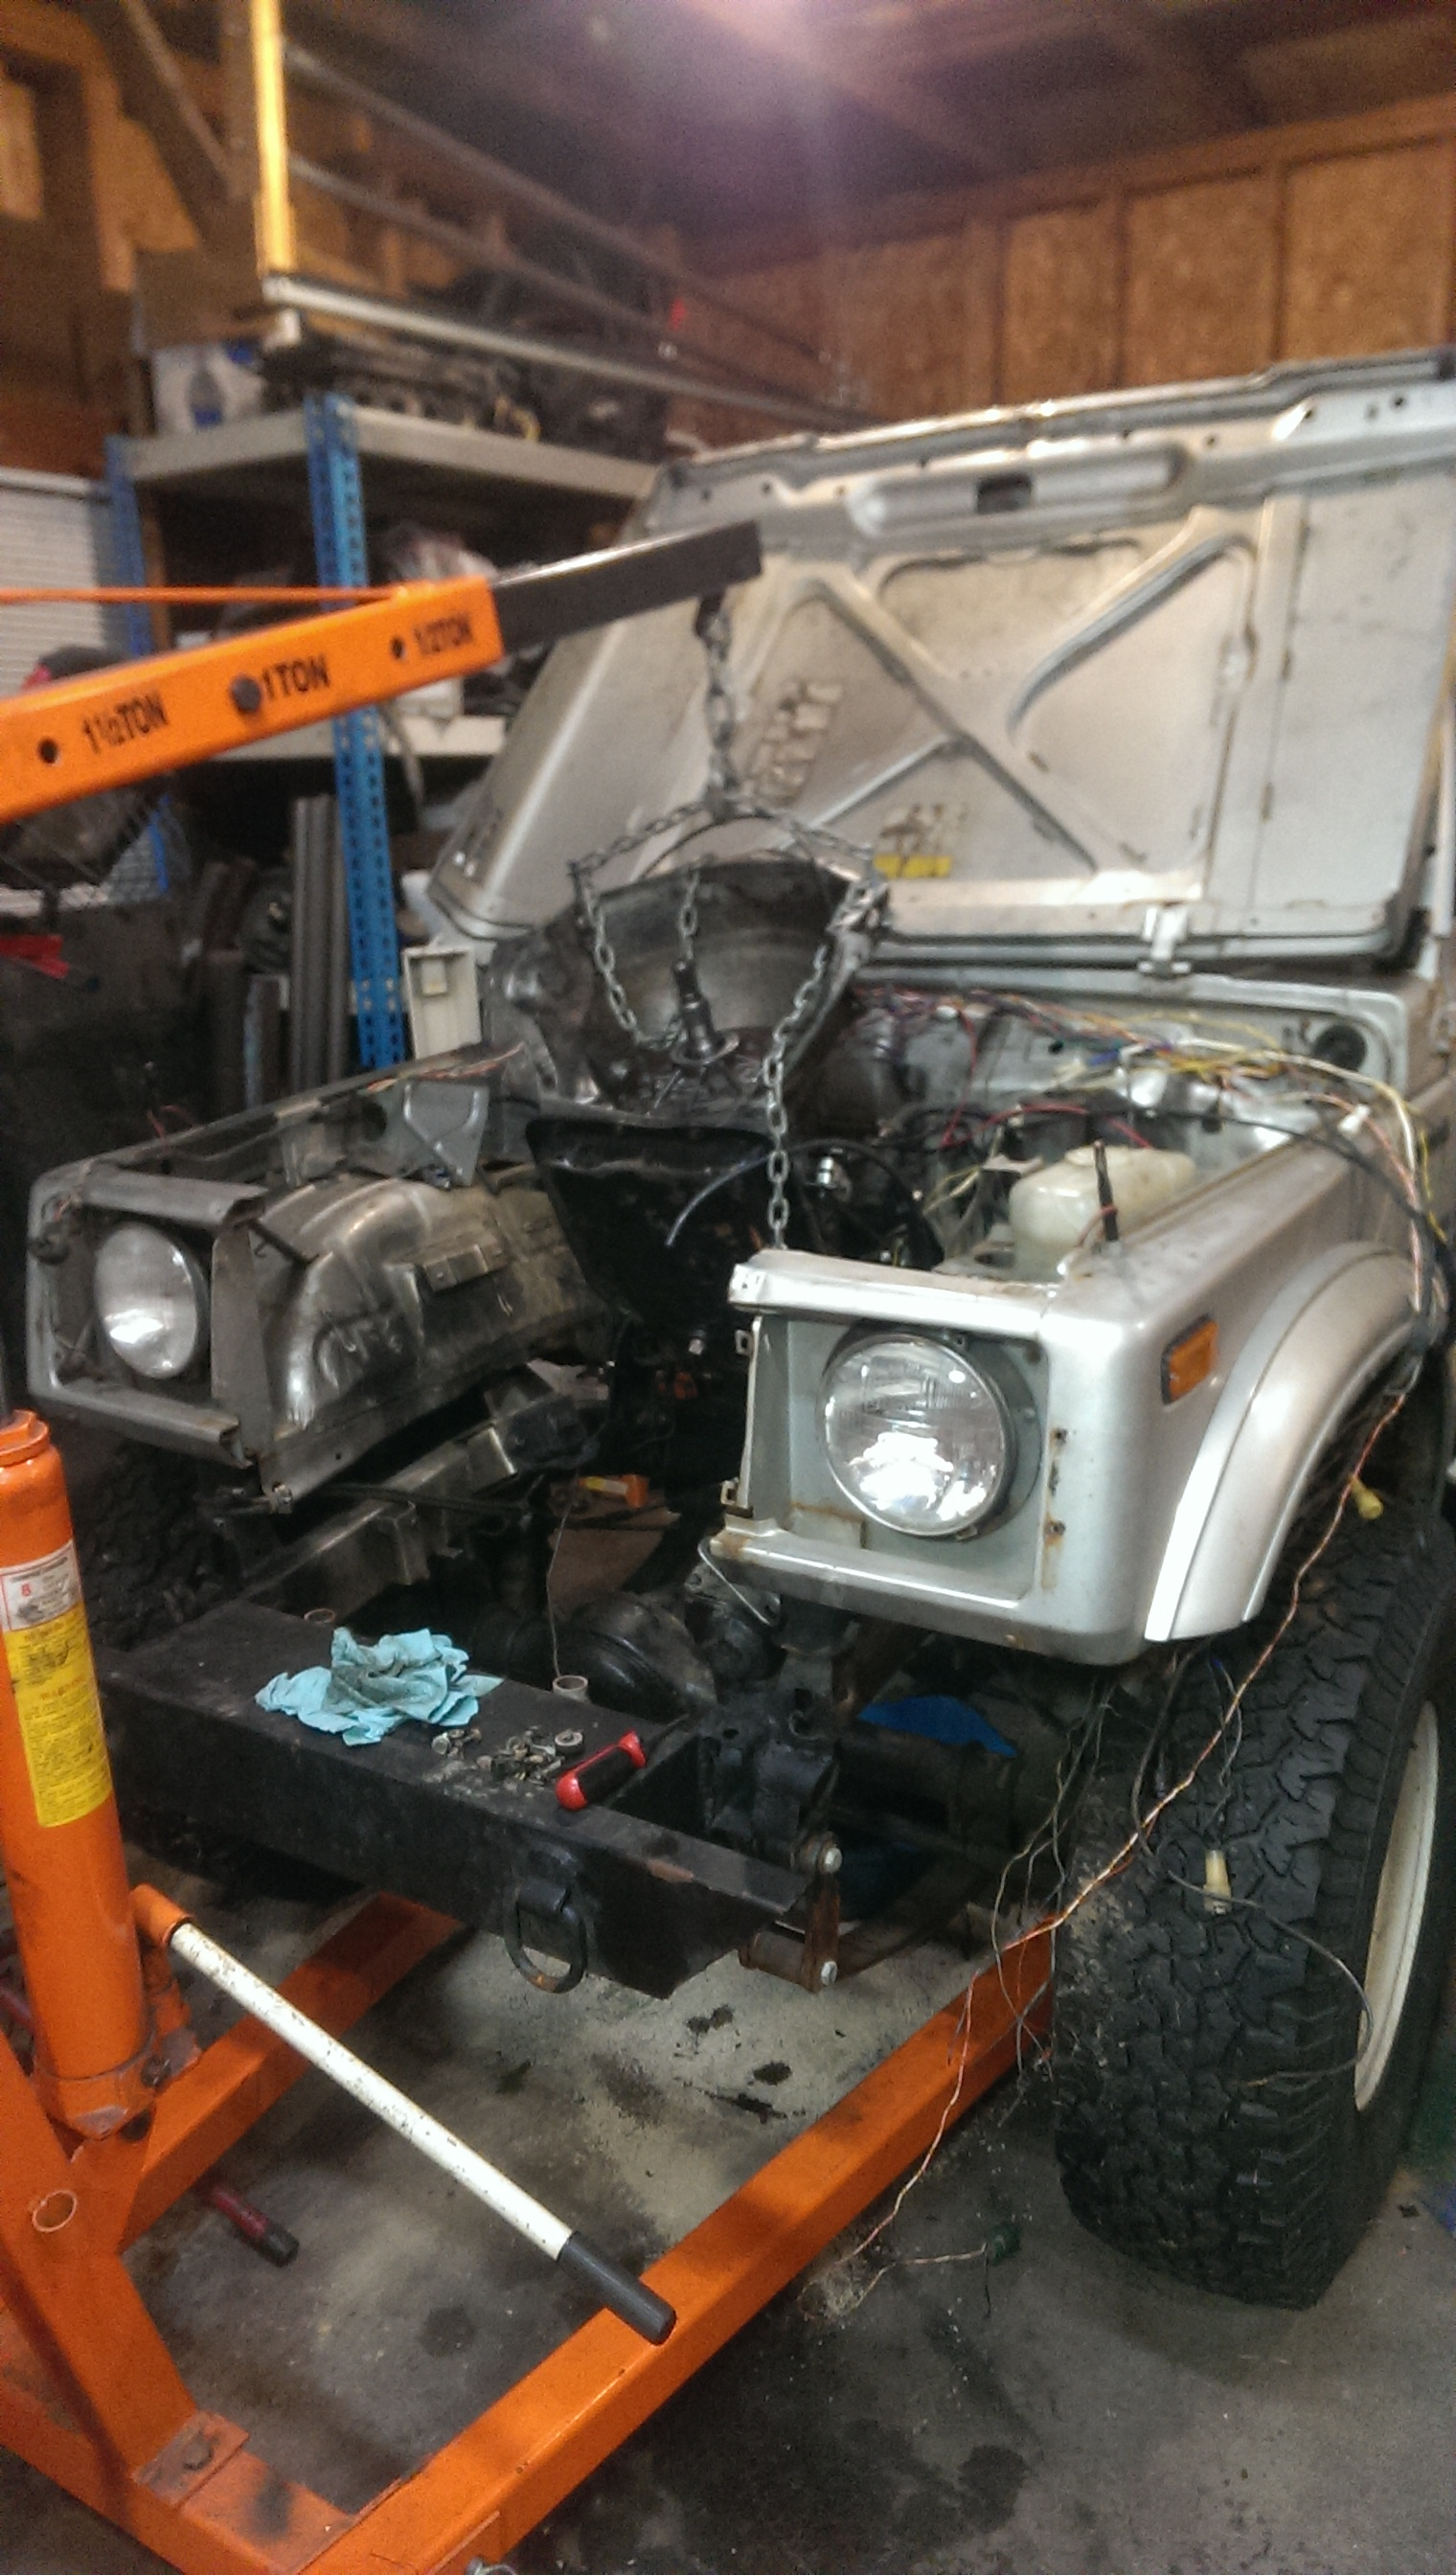 1988 Suzuki Samurai 4g63 Swapped Page 2 Gearbox Rebuild Rewire The Engine Bay And Get Trans Repaired It Is Missing Third